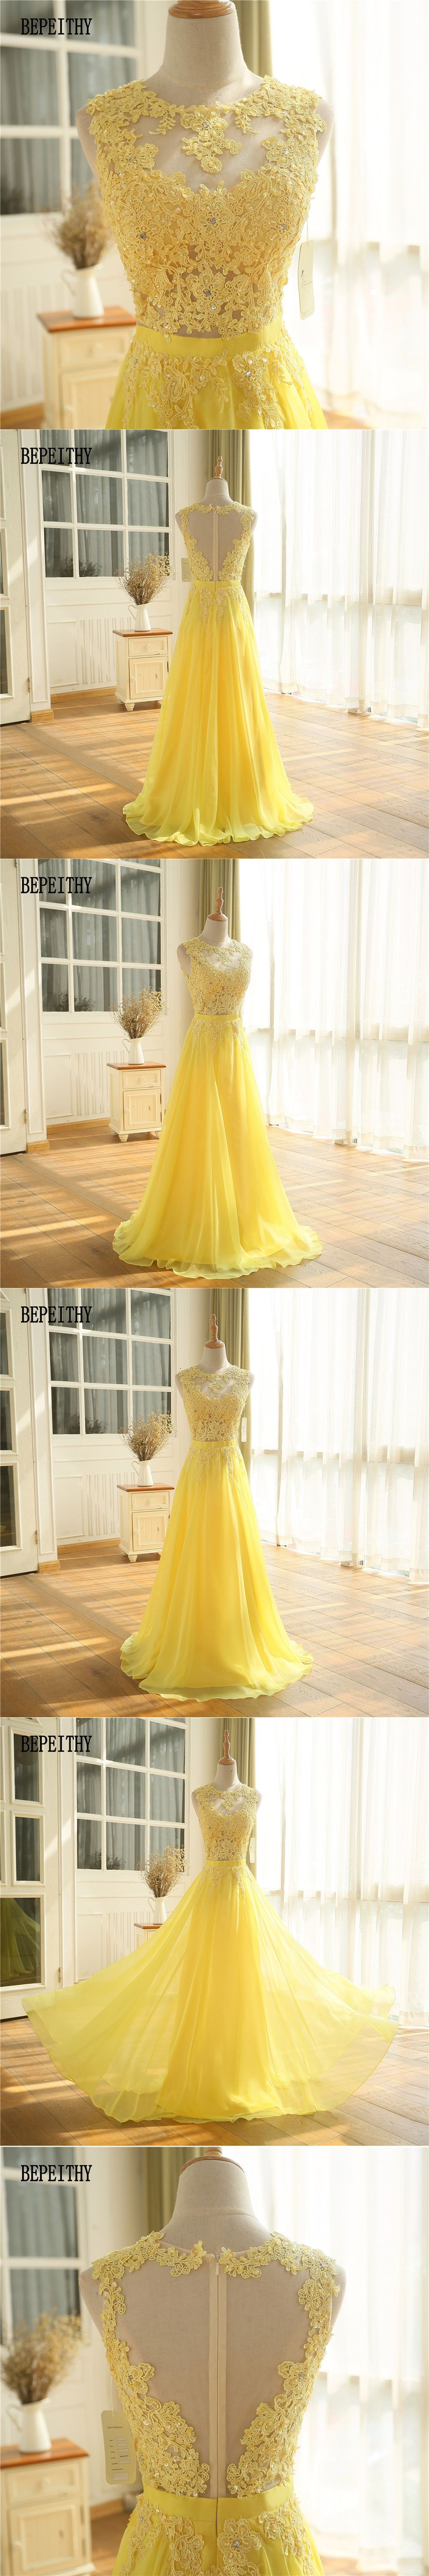 Bepeithy sexy see through lace top long prom dresses vestido de